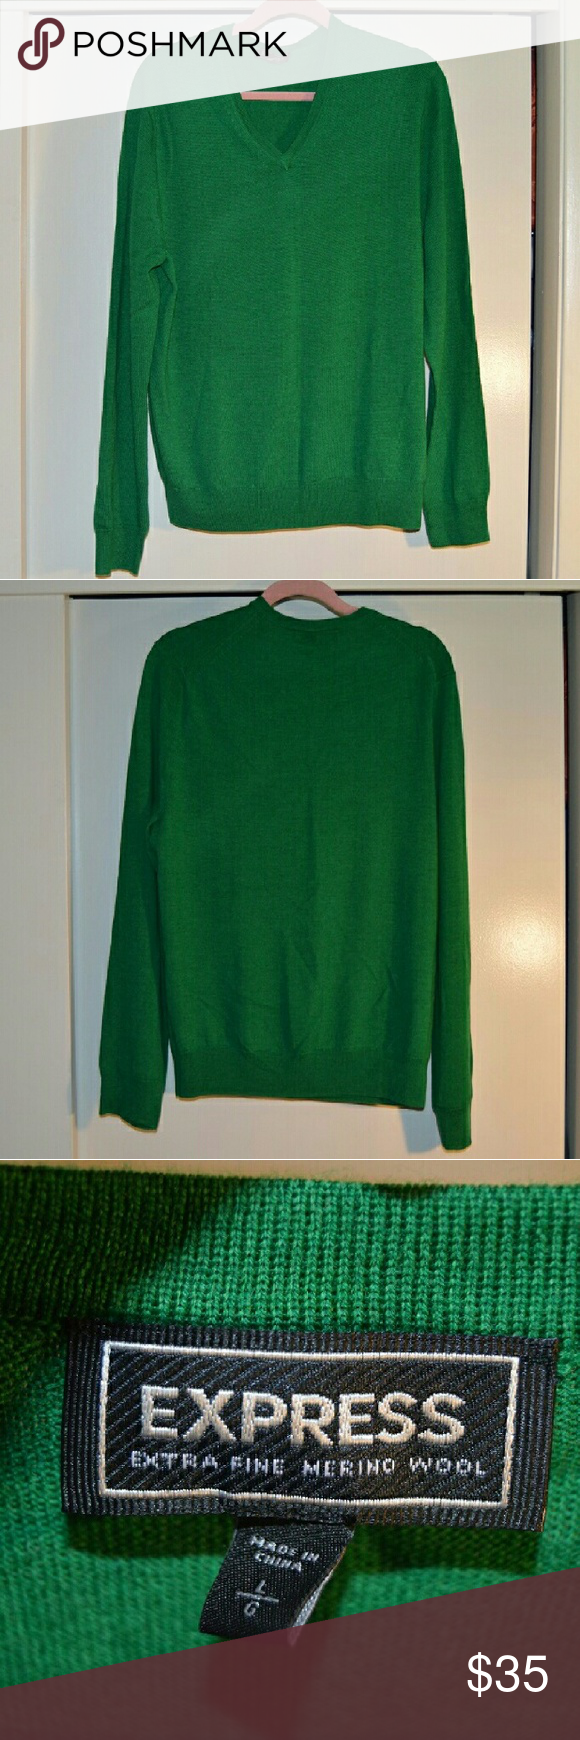 Express Men's 100% Merino Wool Sweater Size Large Express Men's Green 100% Merino Wool Sweater Size Large. Never worn. Express Sweaters V-Neck